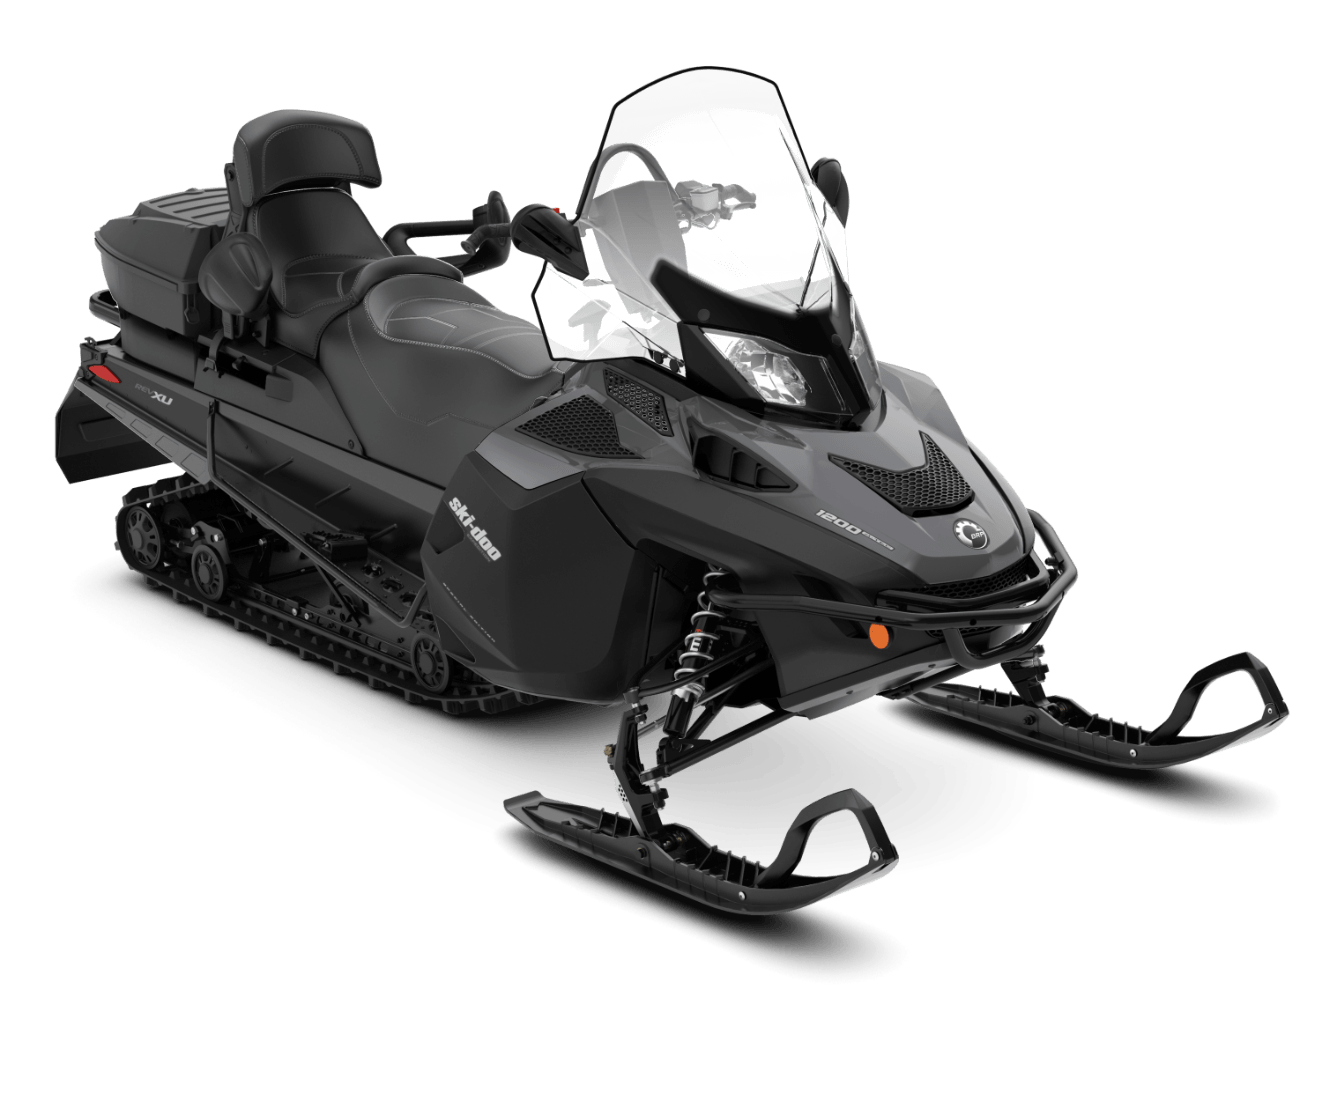 snowmobiles expedition speculator bfab adfd